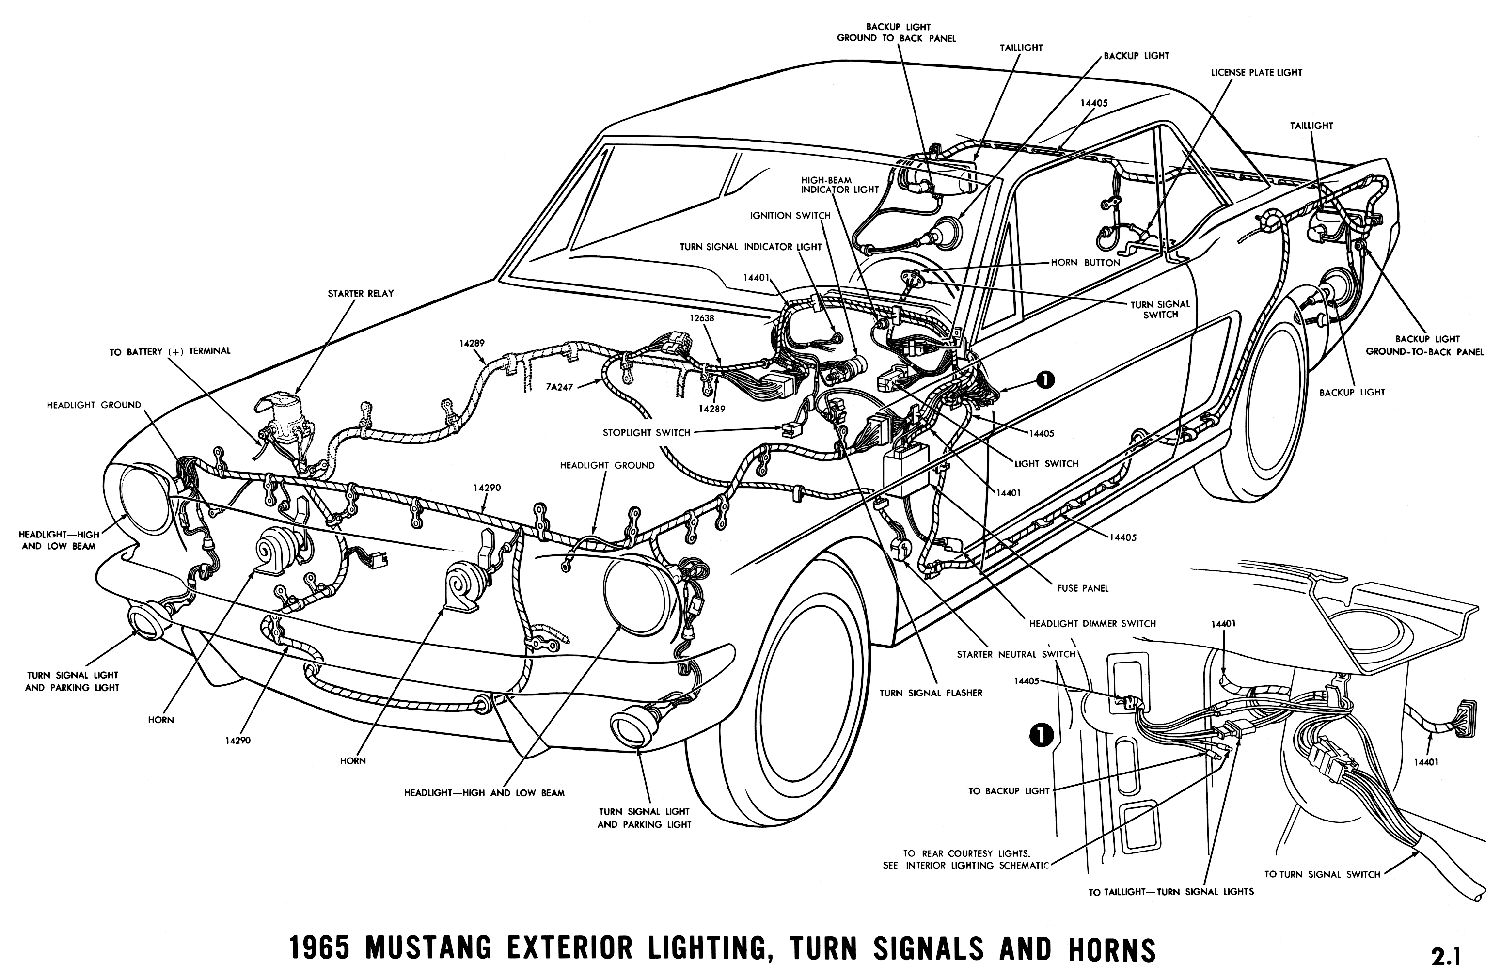 1965 Mustang Wiring Diagrams Average Joe Restoration For 66 Bronco Distributor Pictorial Or Schematic